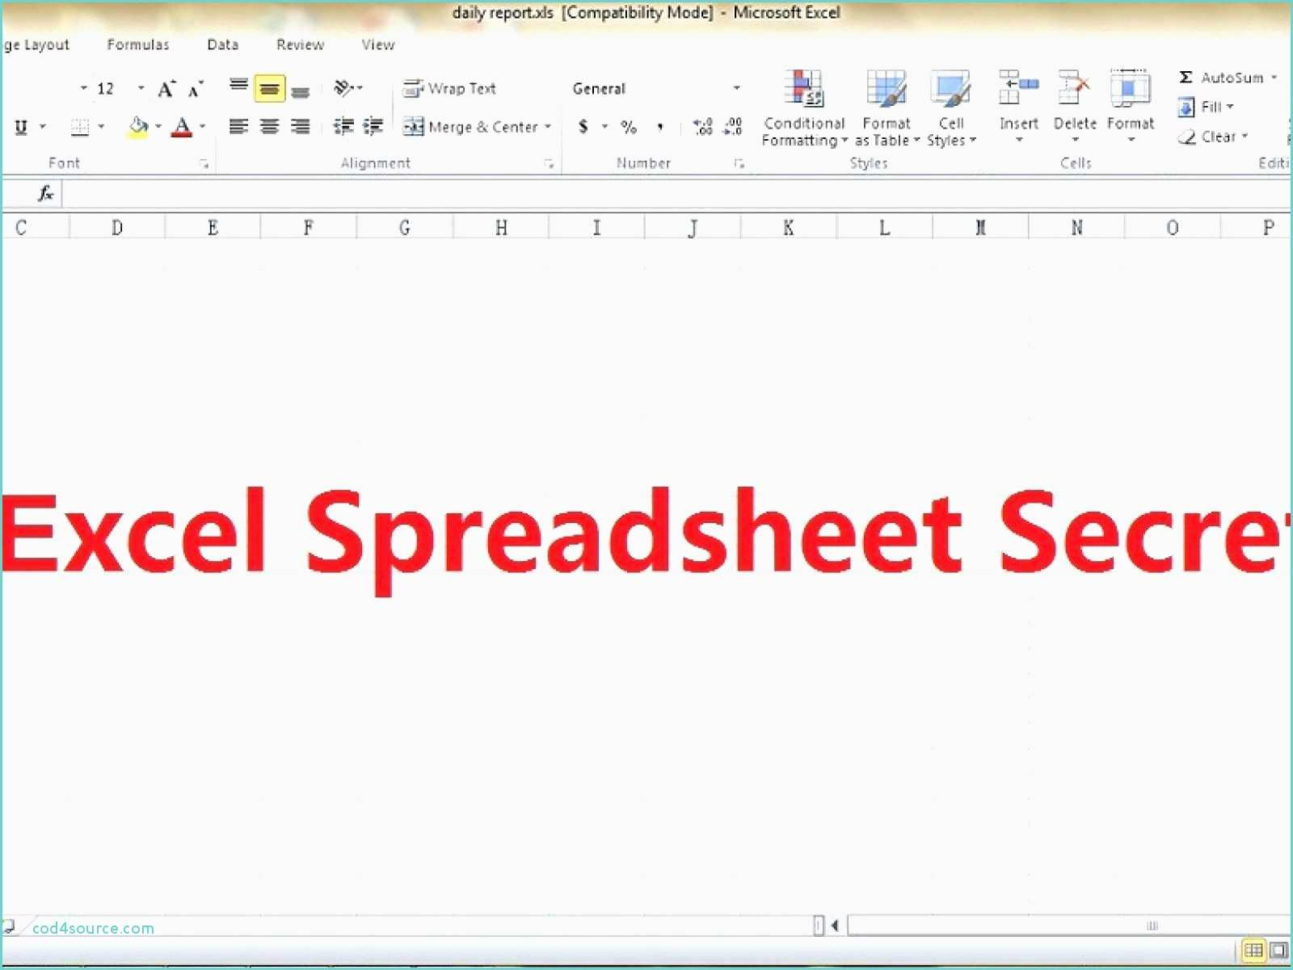 Vacation Calculation Spreadsheet Throughout Vacation Accrual Calculator Excel Template Accrual Spreadsheet